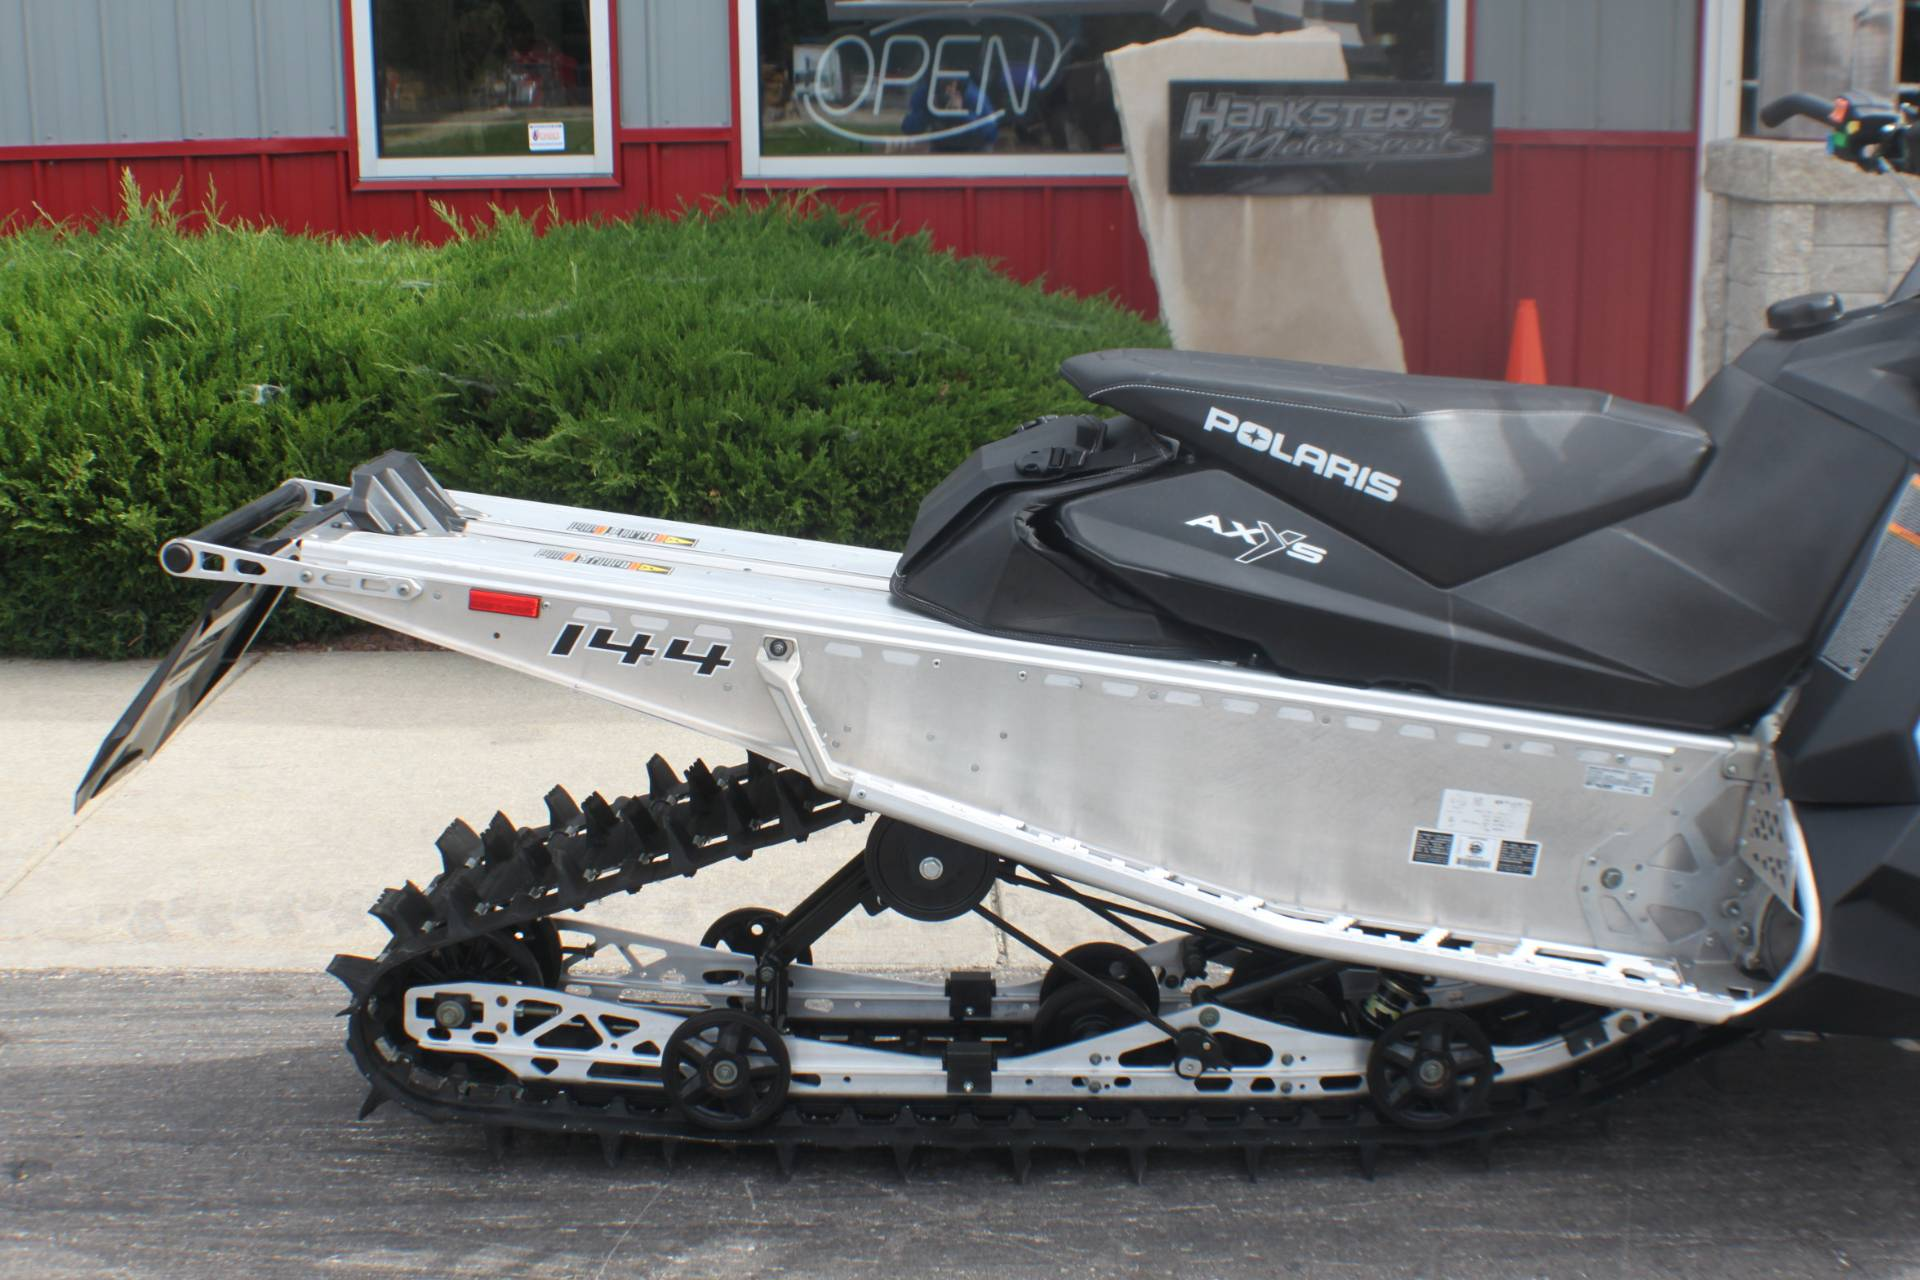 2019 Polaris 600 RMK 144 ES in Janesville, Wisconsin - Photo 35